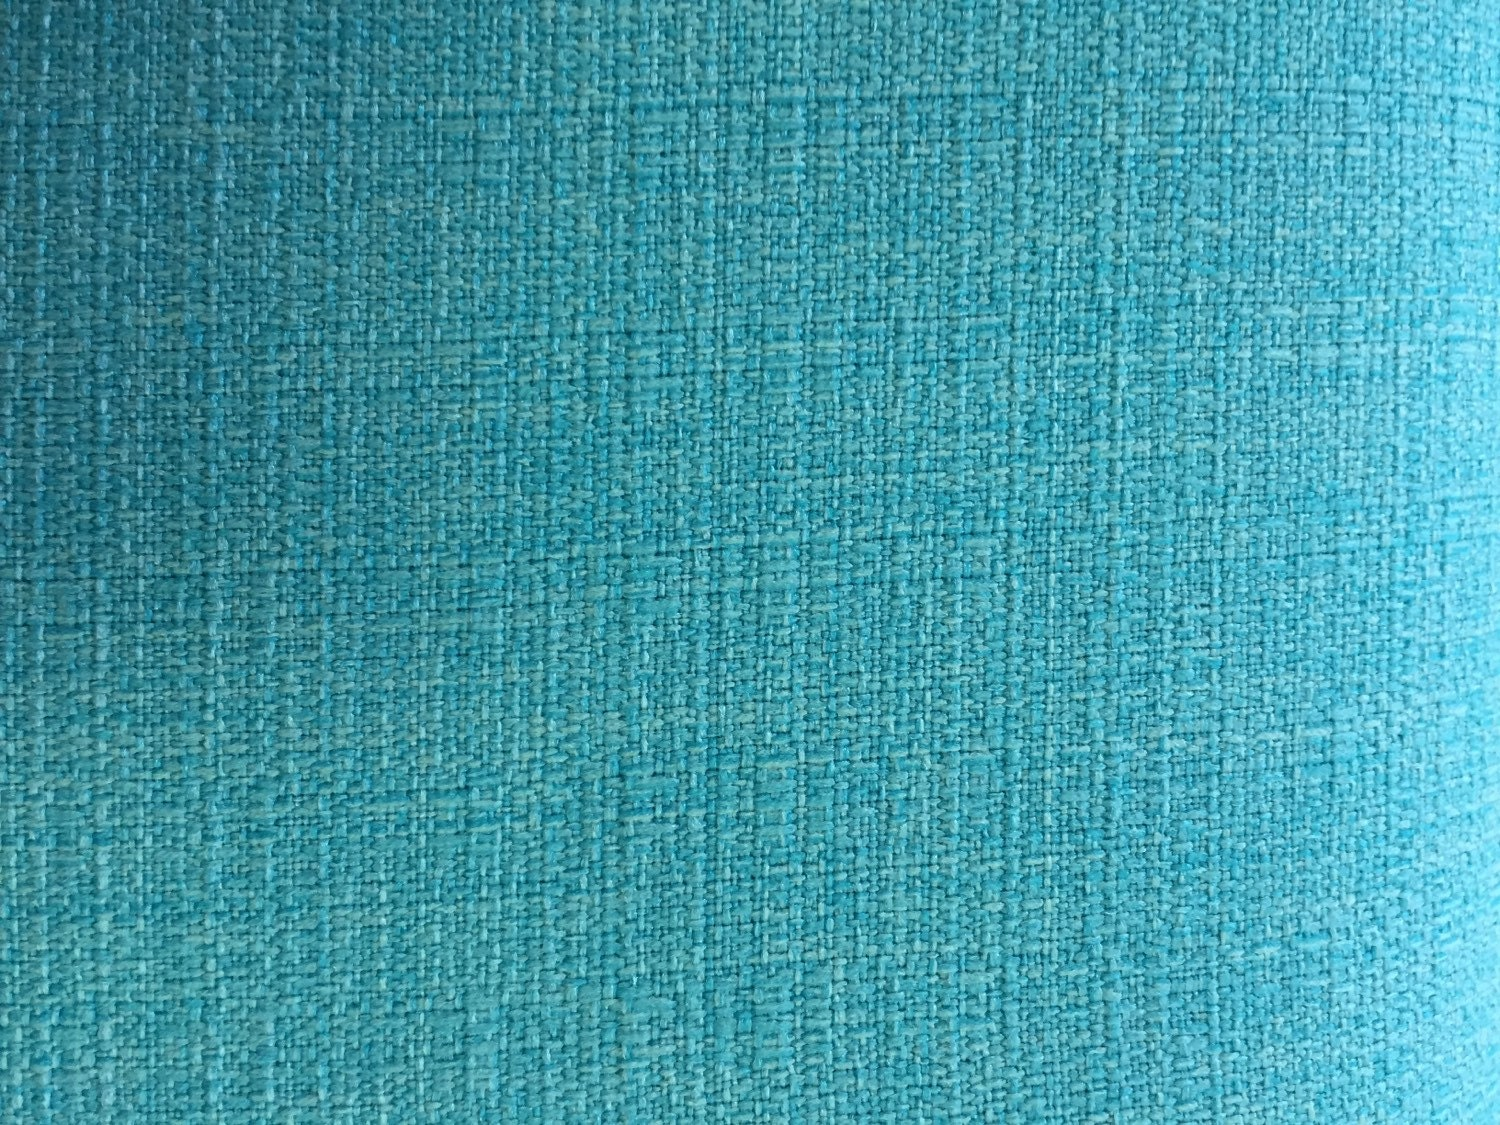 Turquoise Linaire Fabric 100 Polyester Drapery Fabric